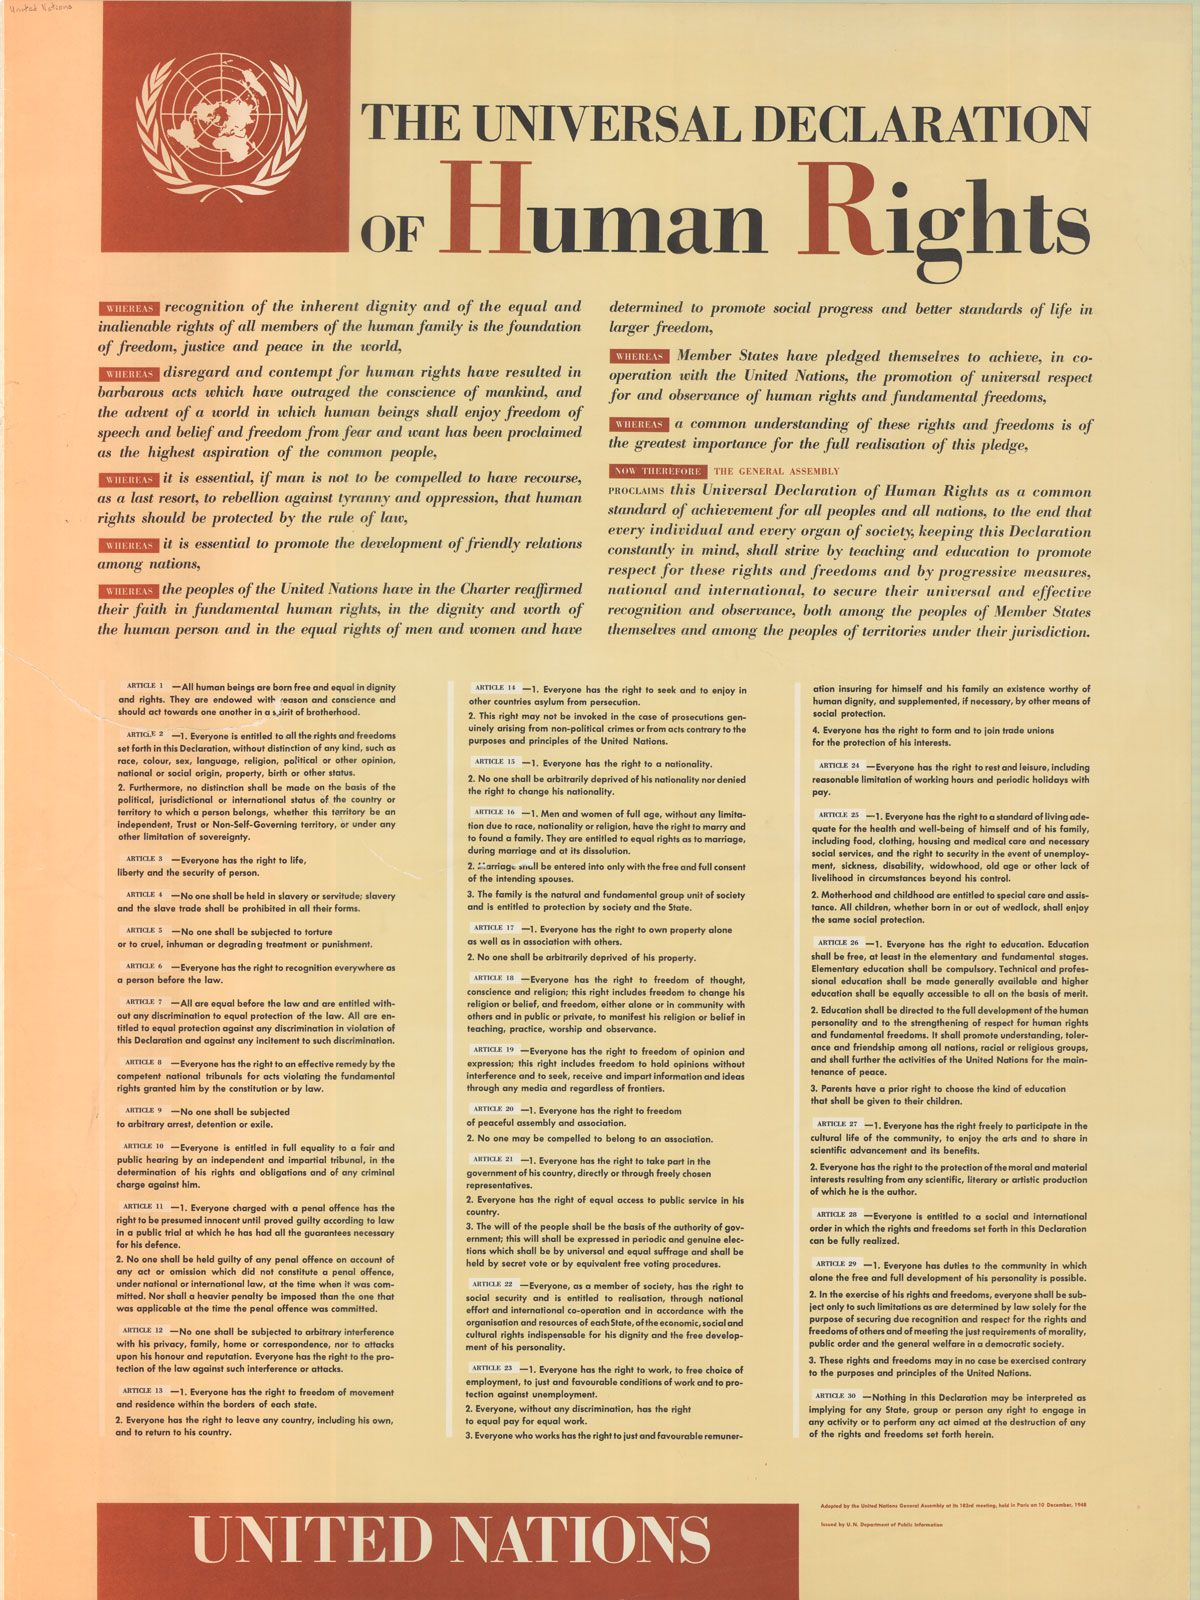 the united nations and human rights essay The importance of human rights today  the importance of human rights today the highest aspiration of the common man is to lead a life where he can enjoy freedom of speech, freedom of belief and have no fear of suppression.